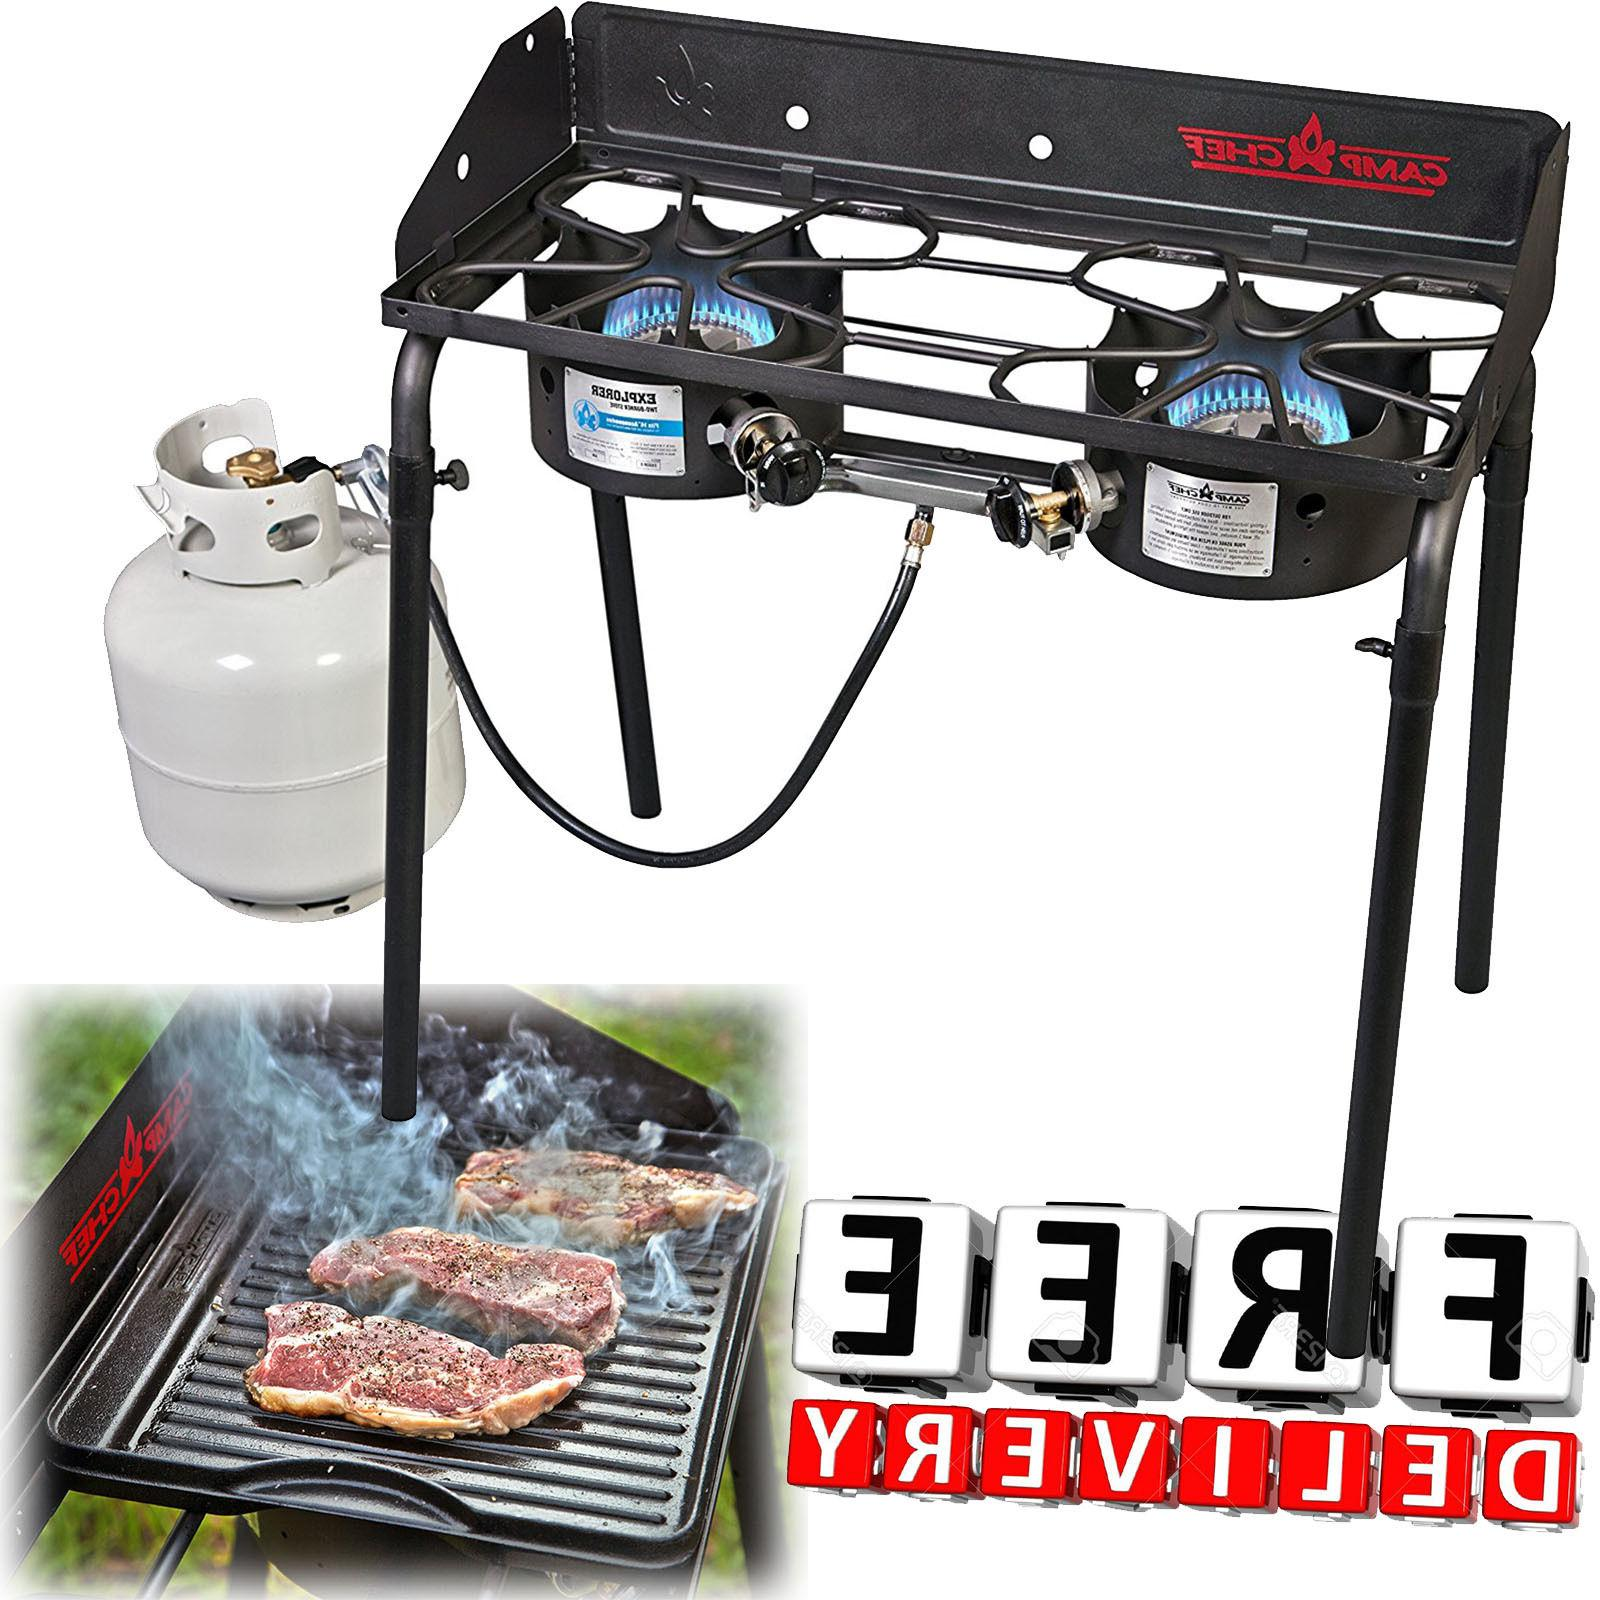 2 burner propane stove camping camp portable